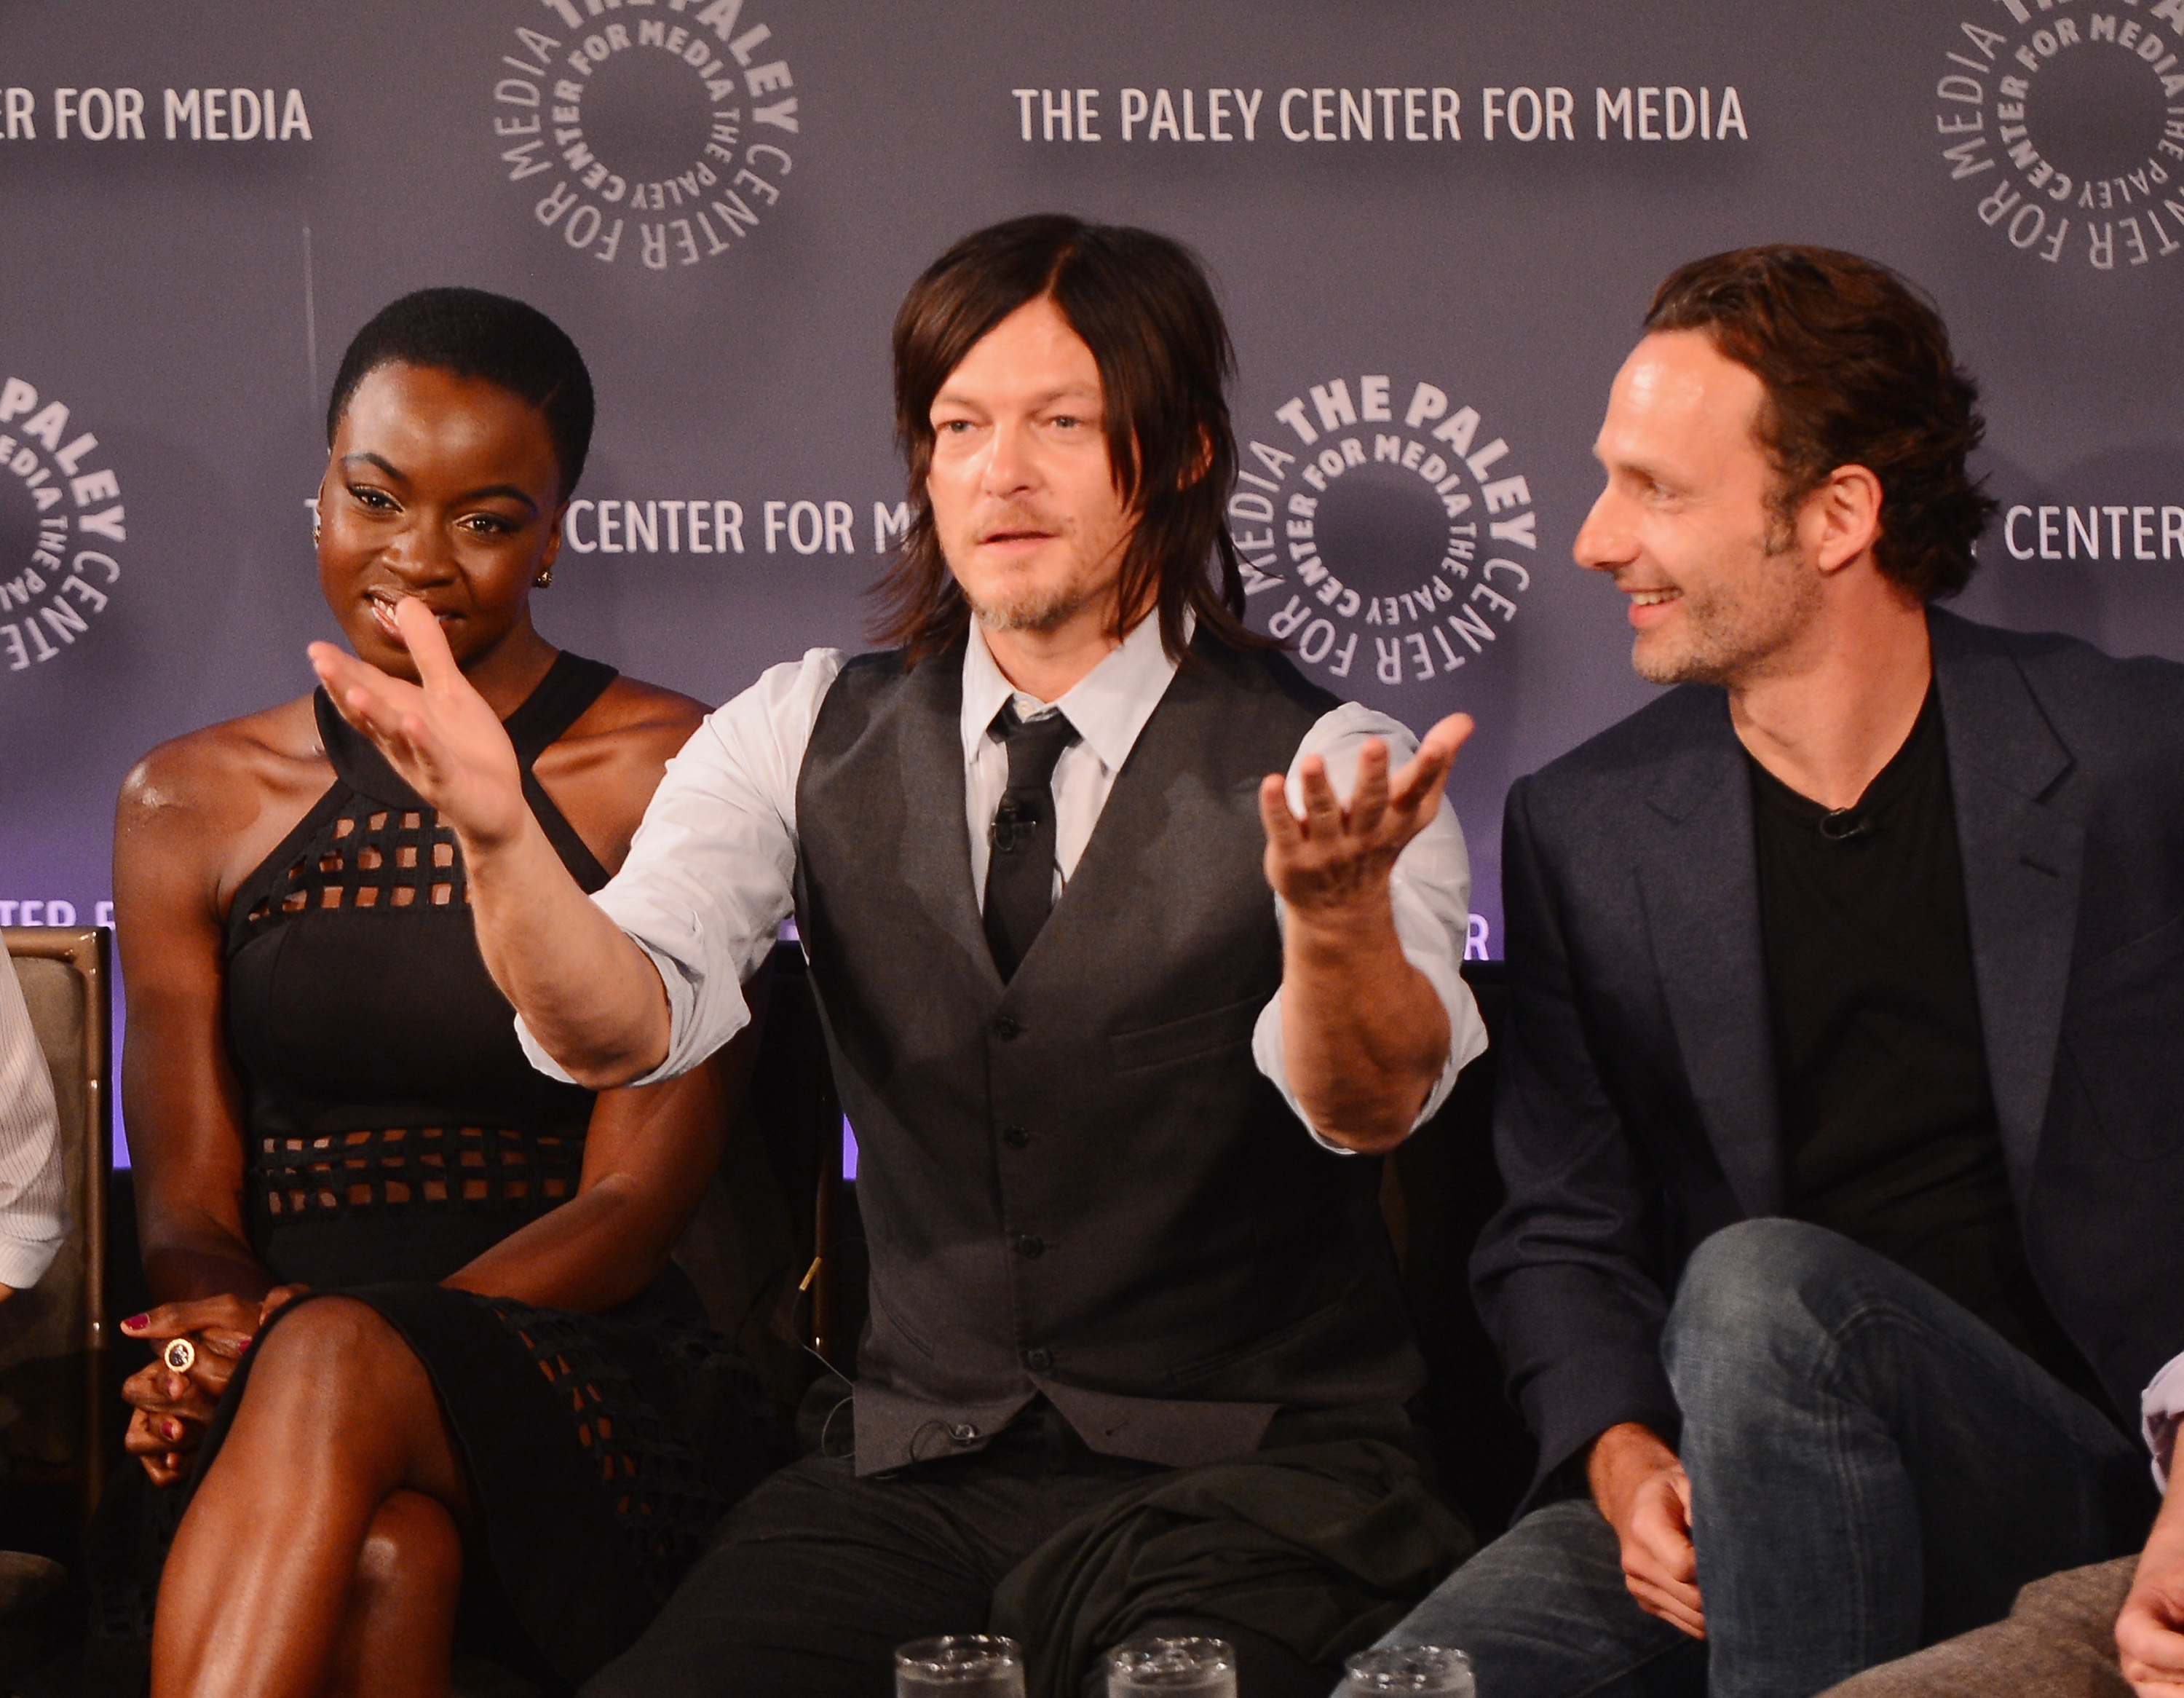 Danai Gurira, Norman Reedus, and Andy Lincoln at Palyfest New York in October 2014